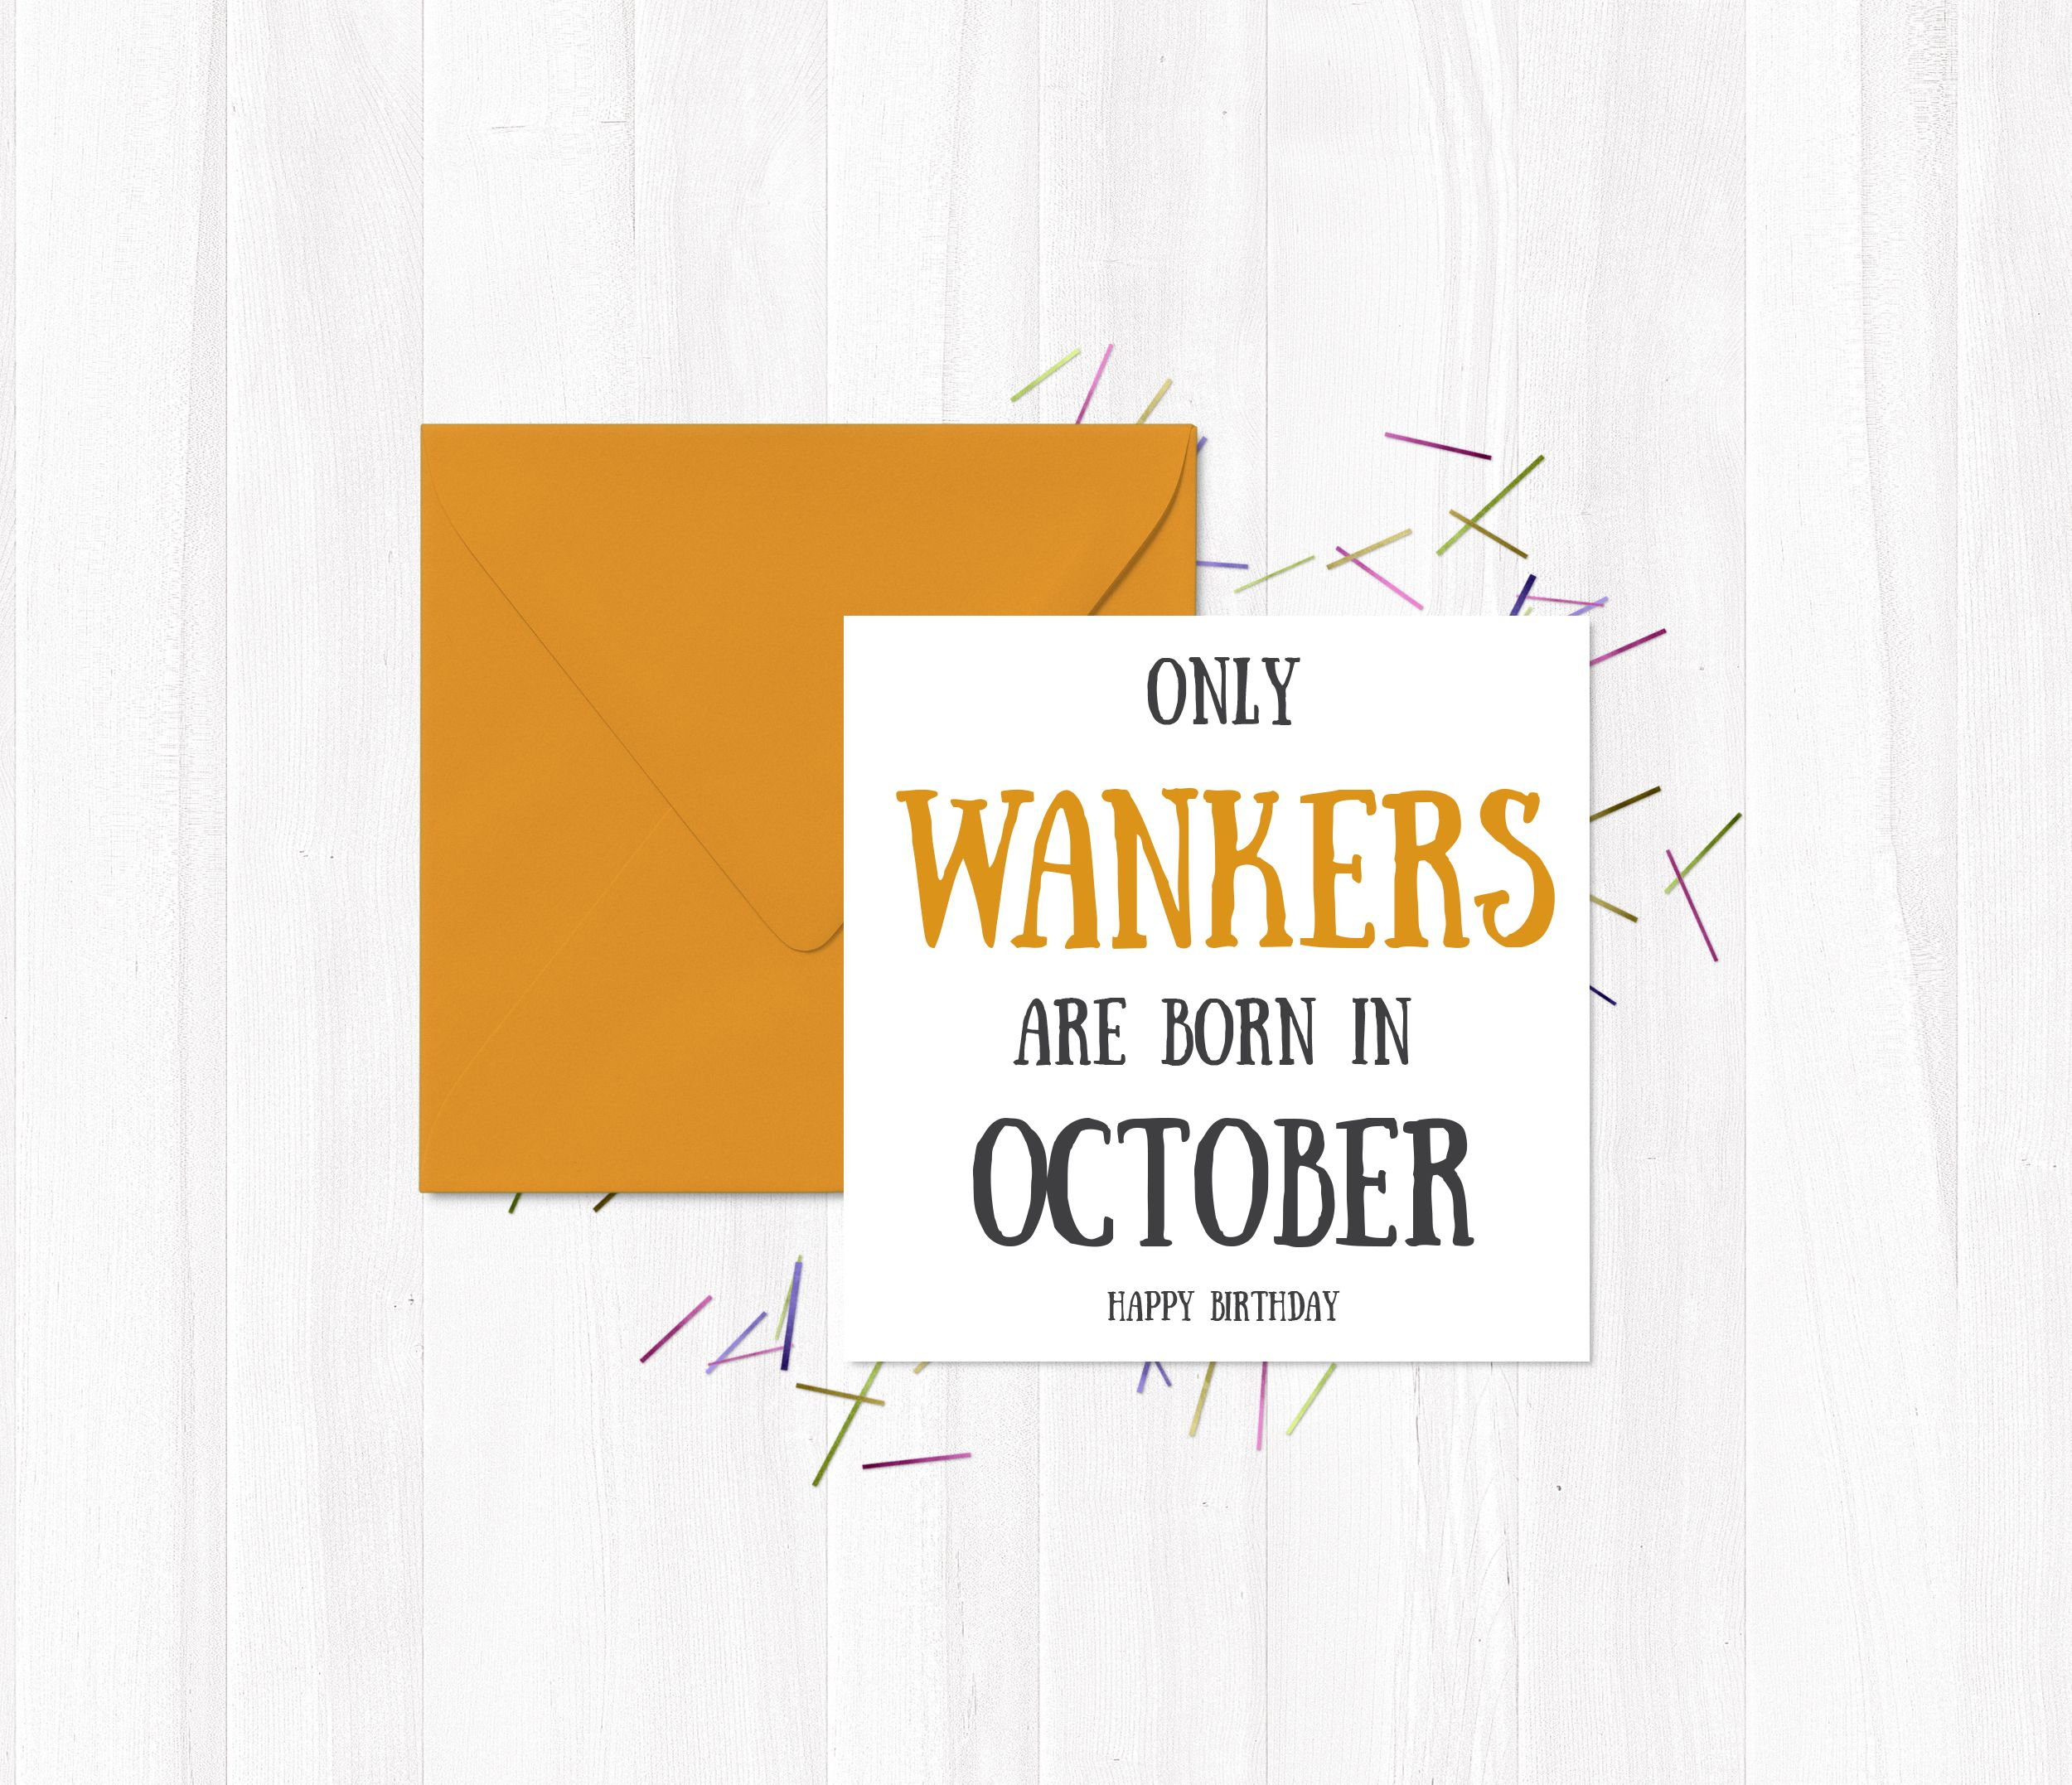 Funny Greetings Cards Only Wankers Are Born In October   Happy Birthday    #October #